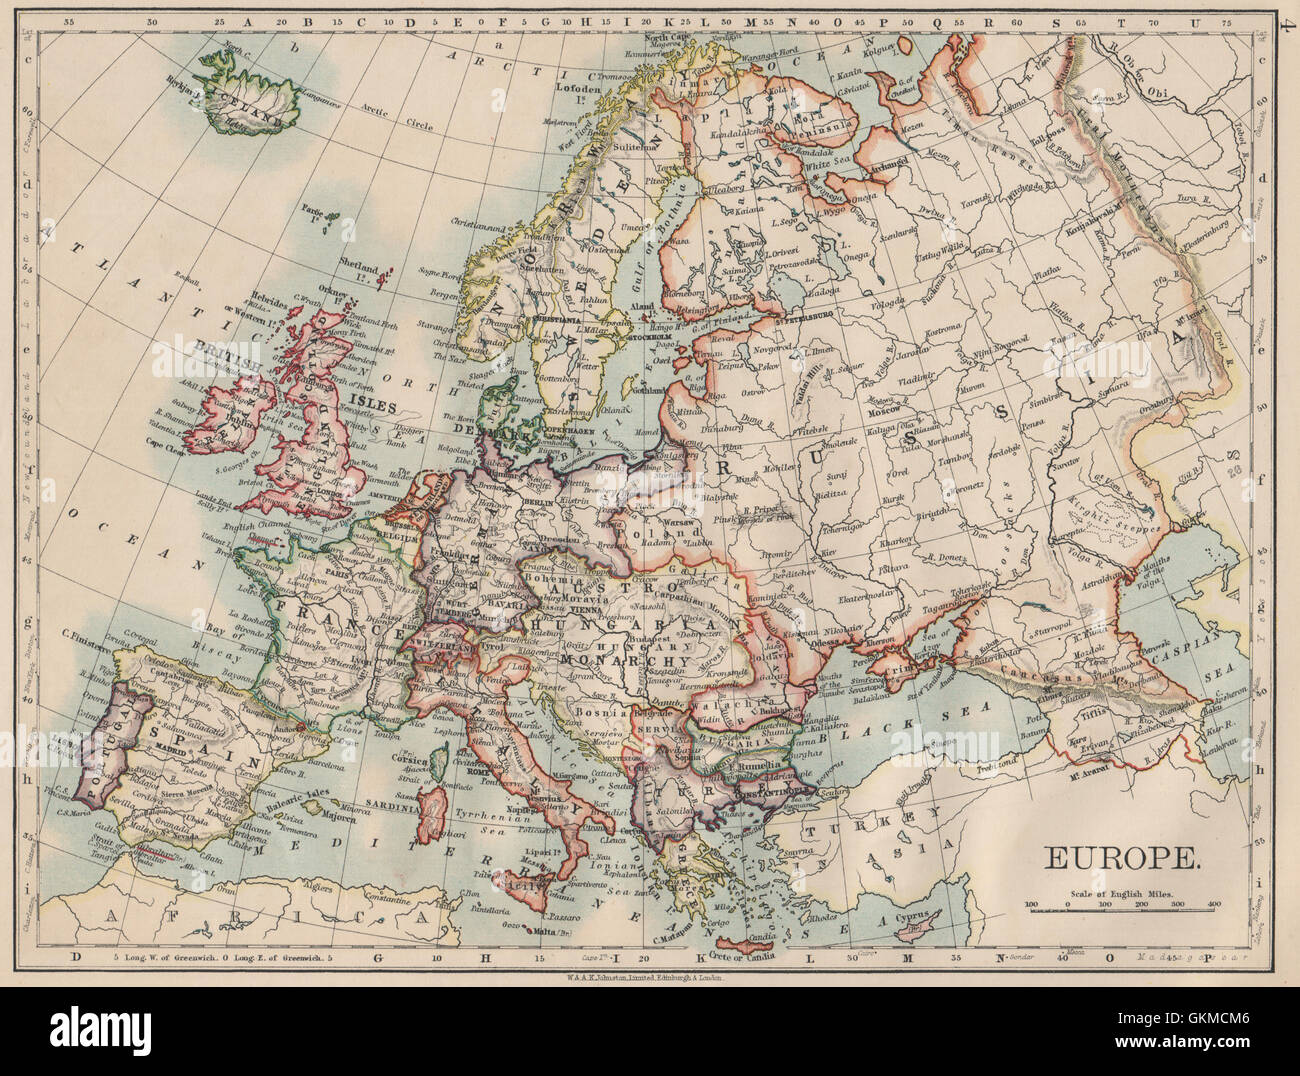 EUROPE POLITICAL AustriaHungary United Sweden Norway - Sweden map search